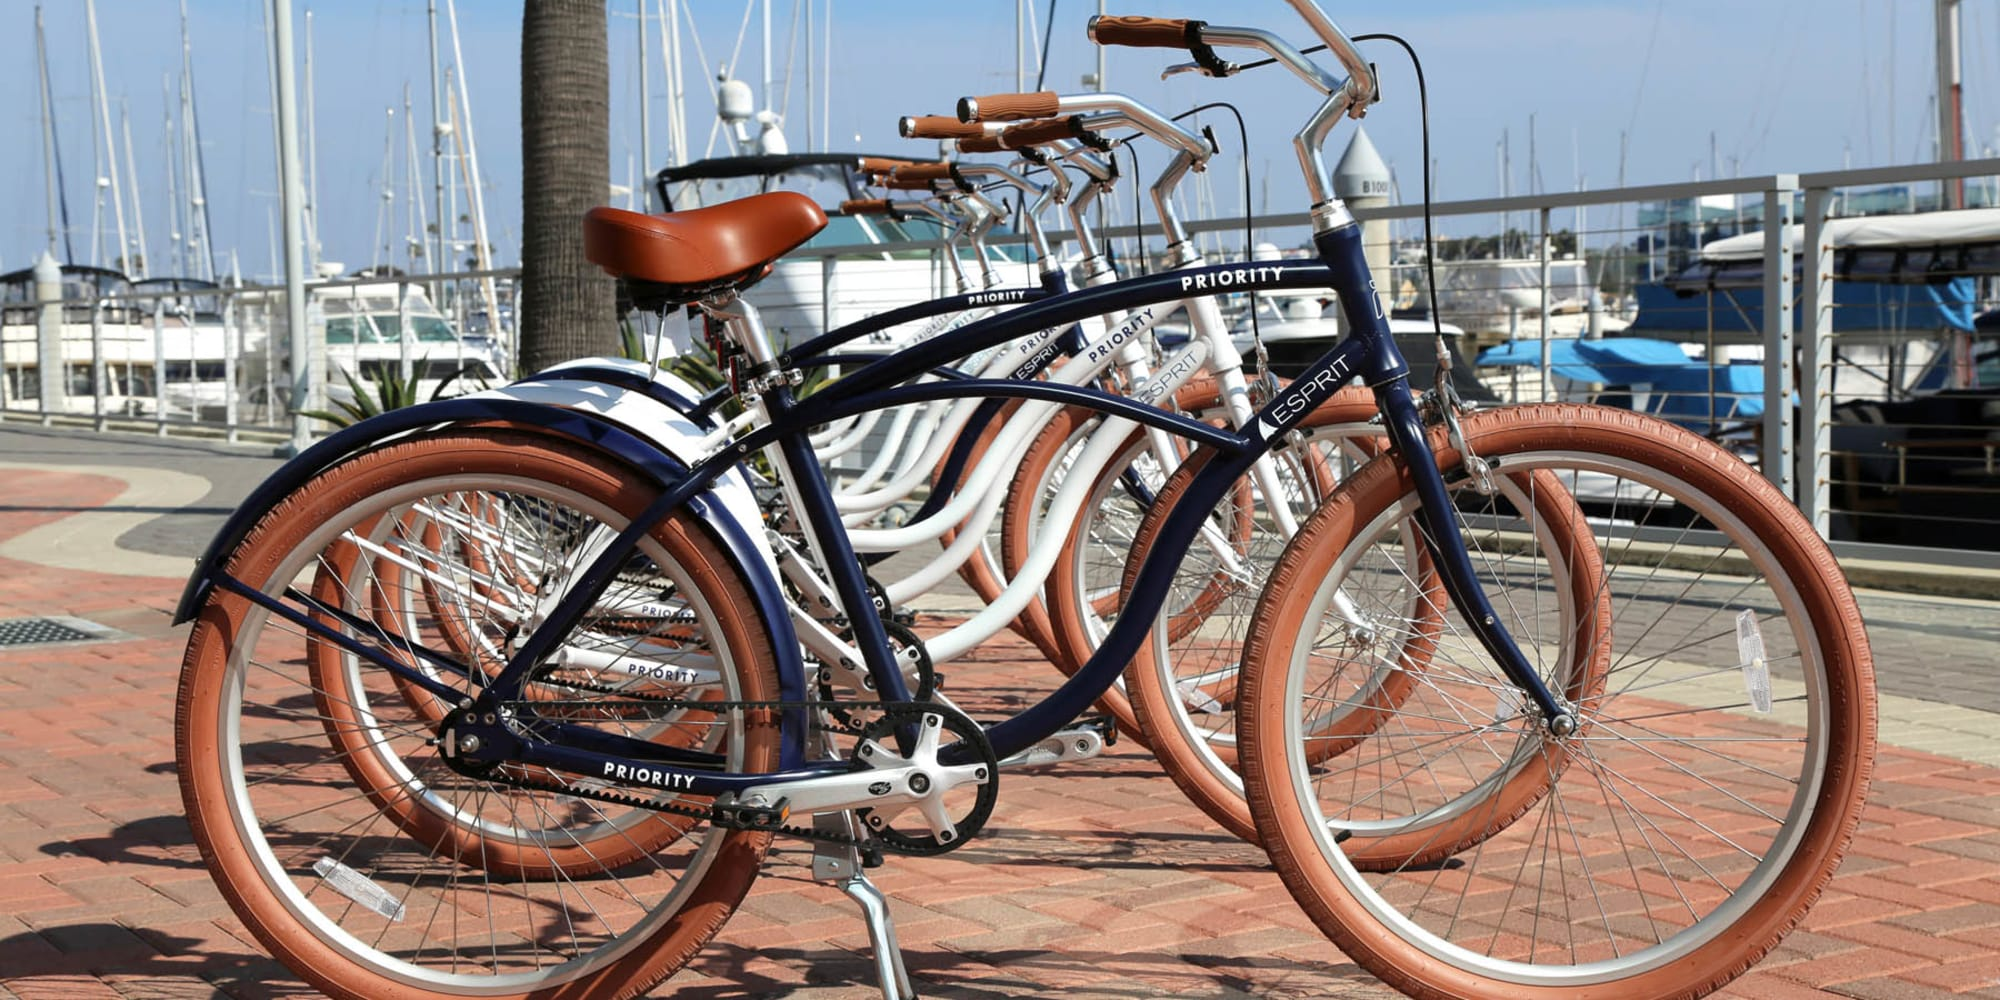 Bicycles for resident use at Esprit Marina del Rey in Marina Del Rey, California